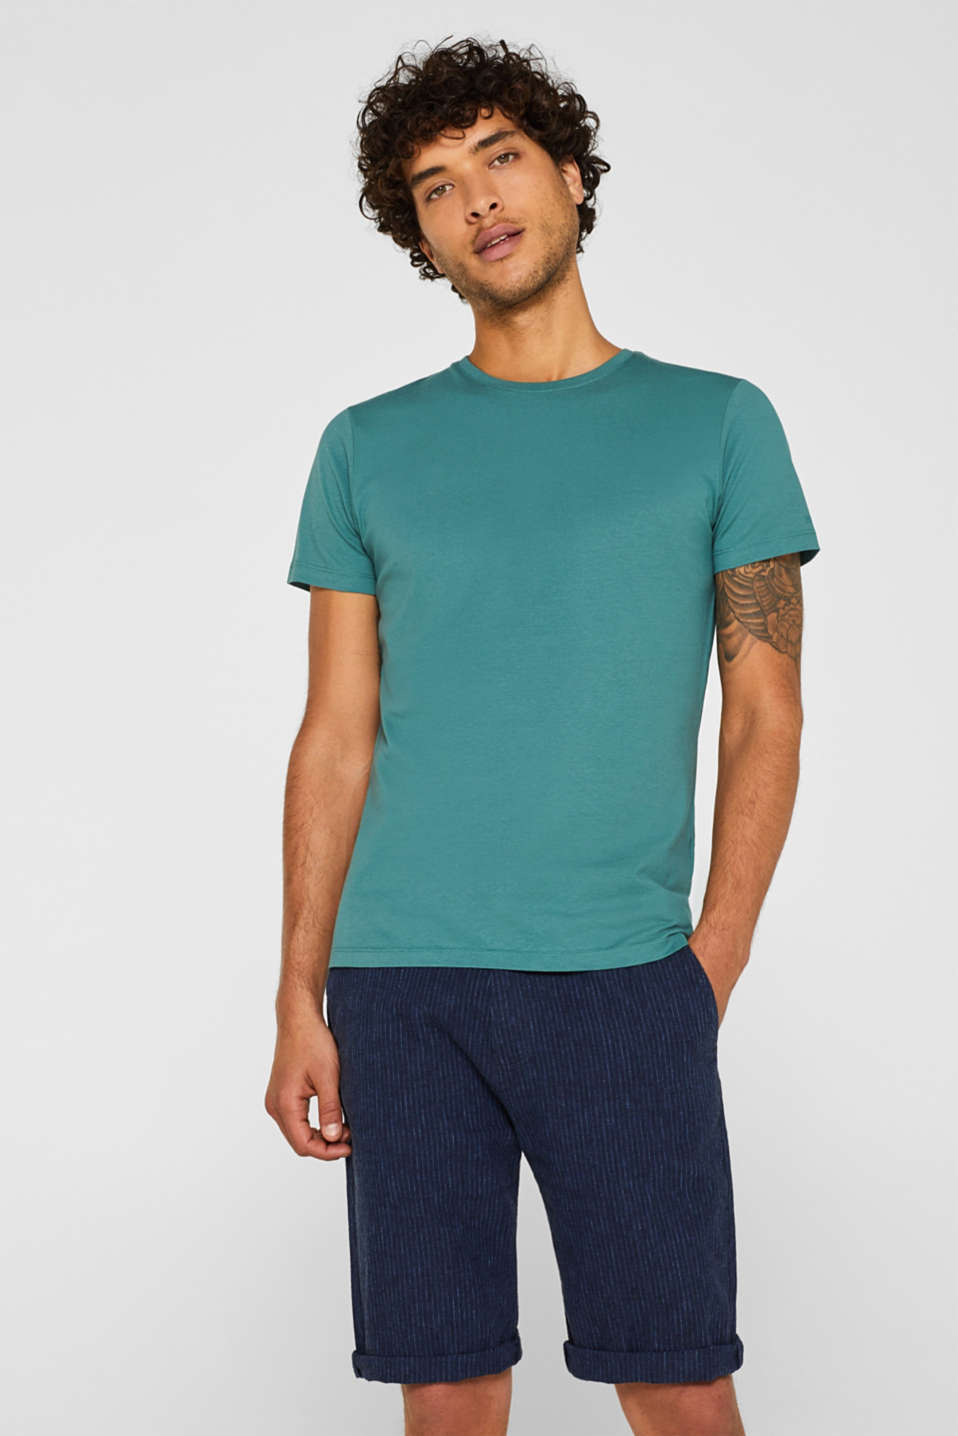 Esprit - Double pack of T-shirts made of 100% cotton